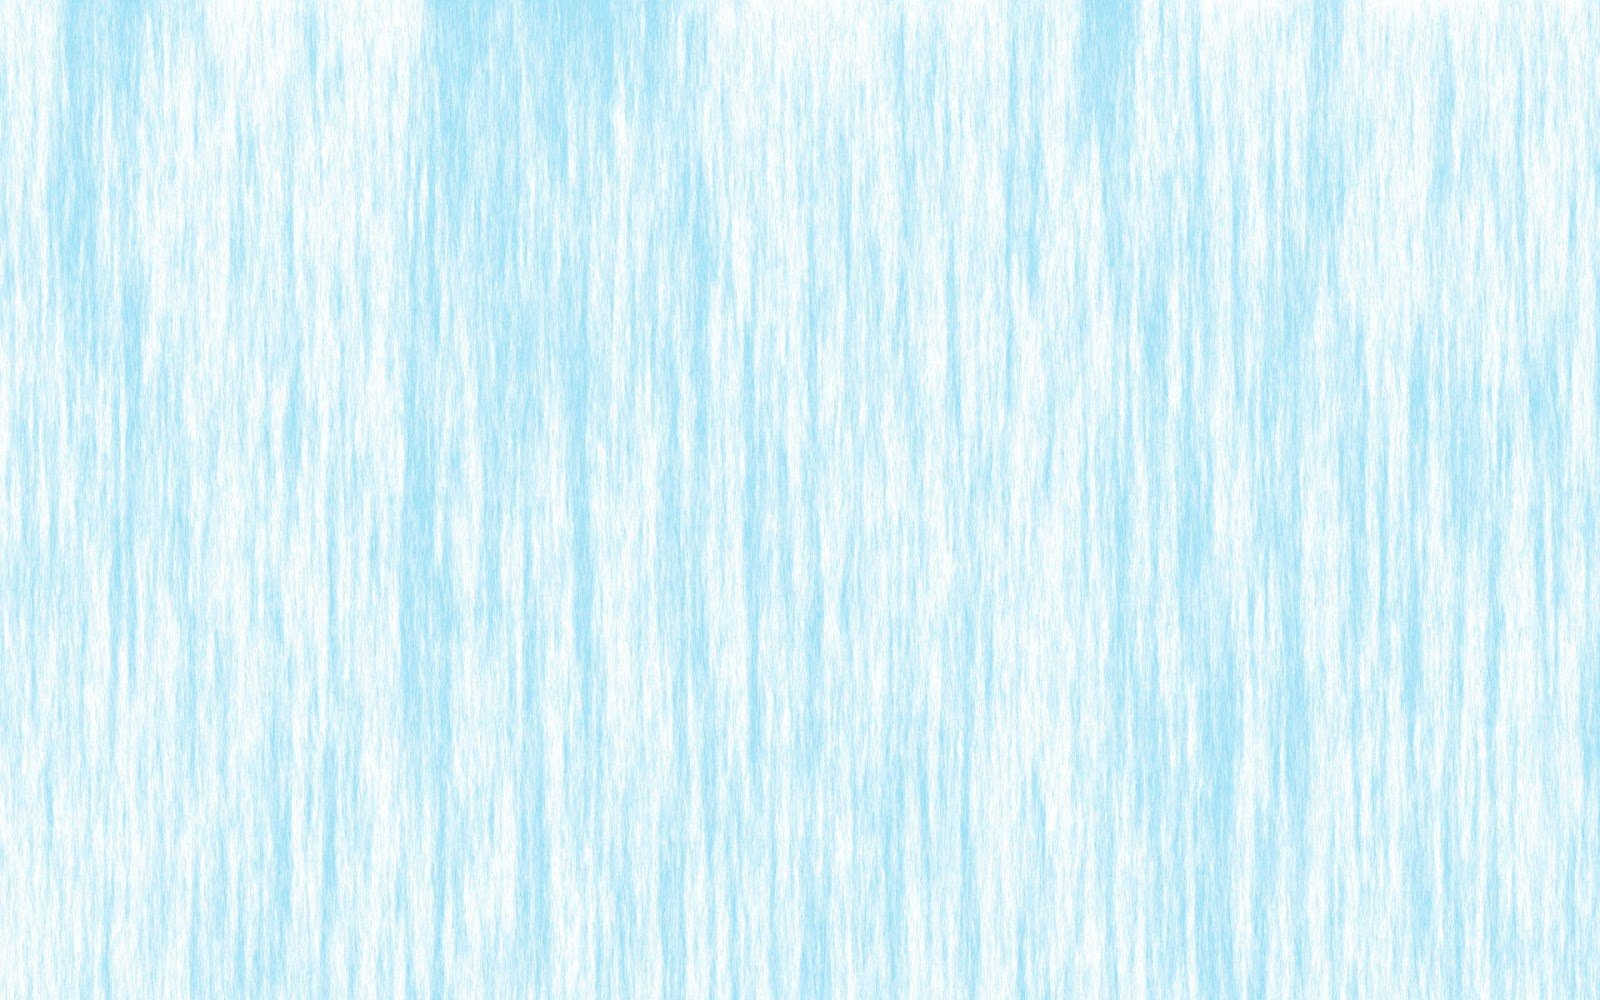 Light blue and white wallpaper wallpapersafari for Blue and white wallpaper